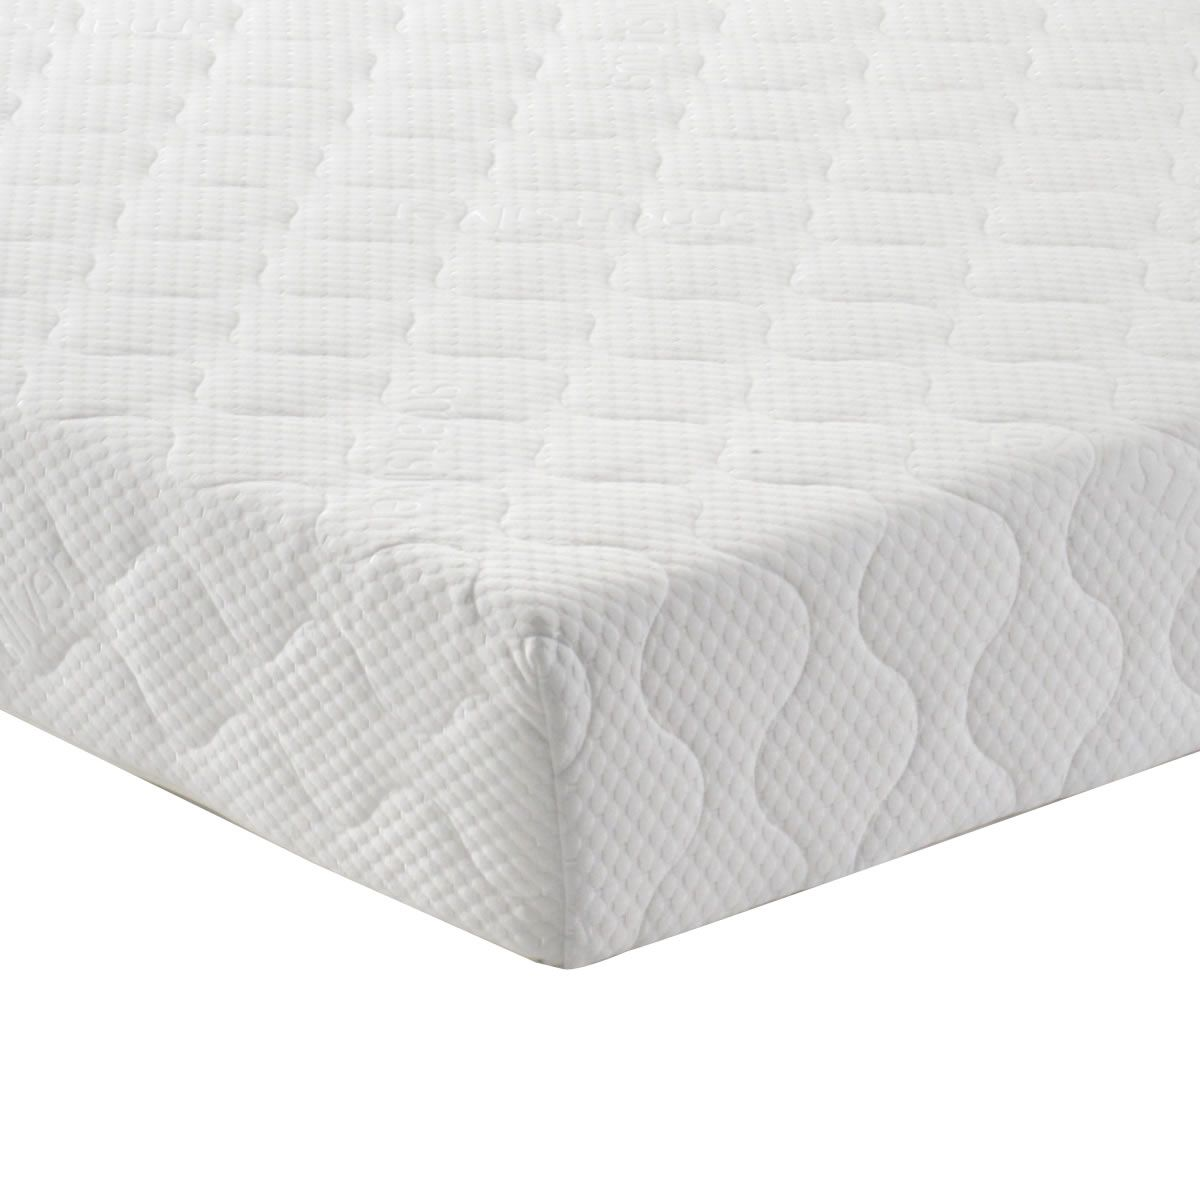 mattresses | mattresses for sale | mattresses for sale uk ...